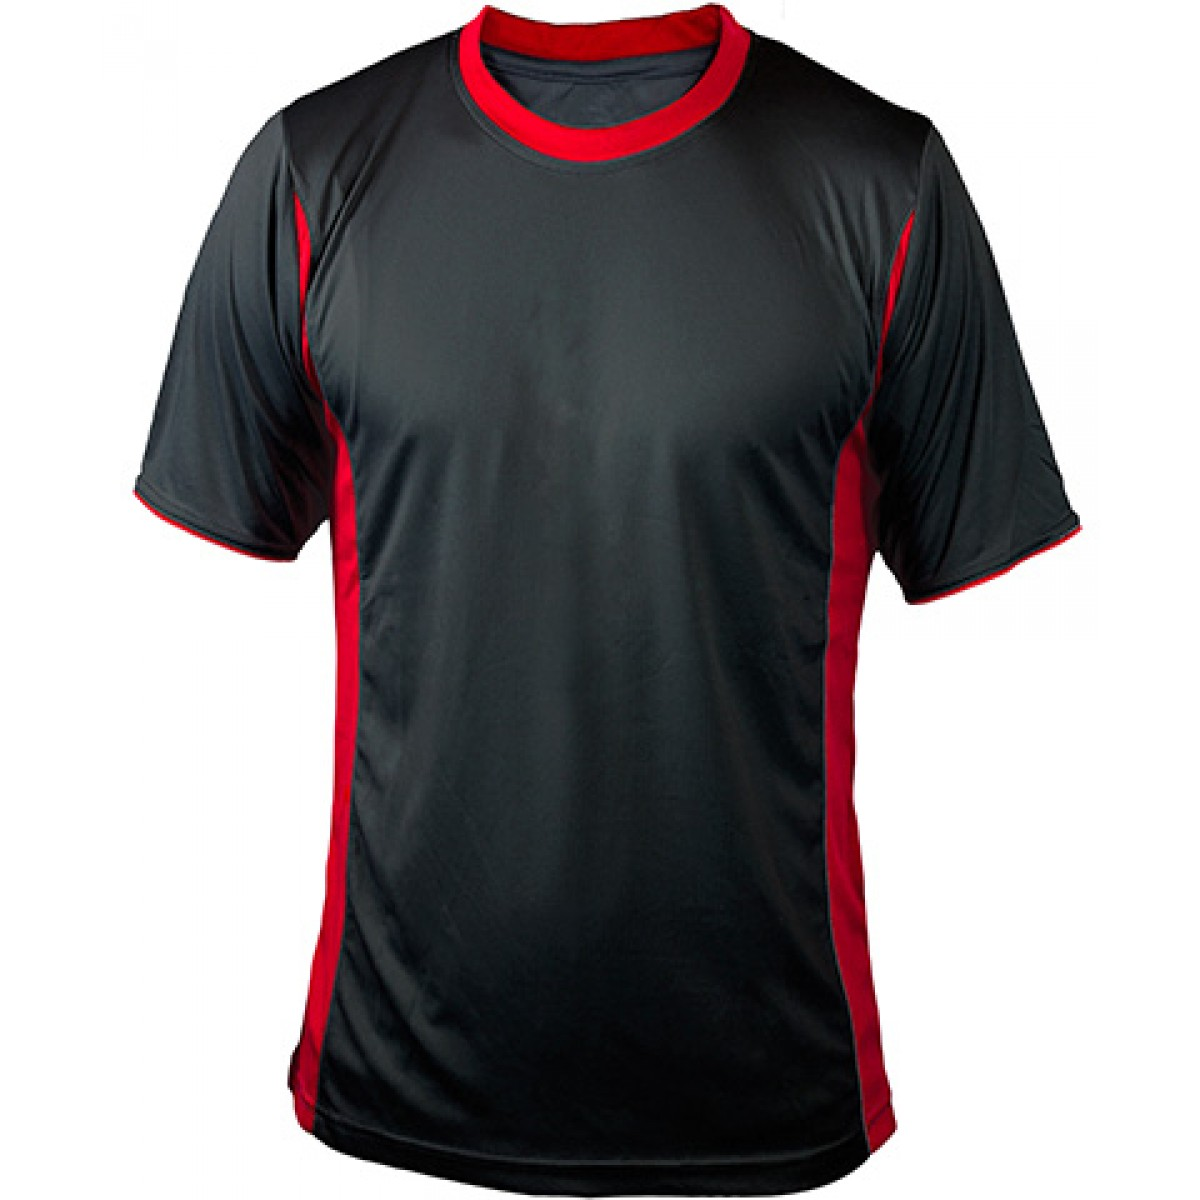 Black Short Sleeves Performance With Red Side Insert-Black-L